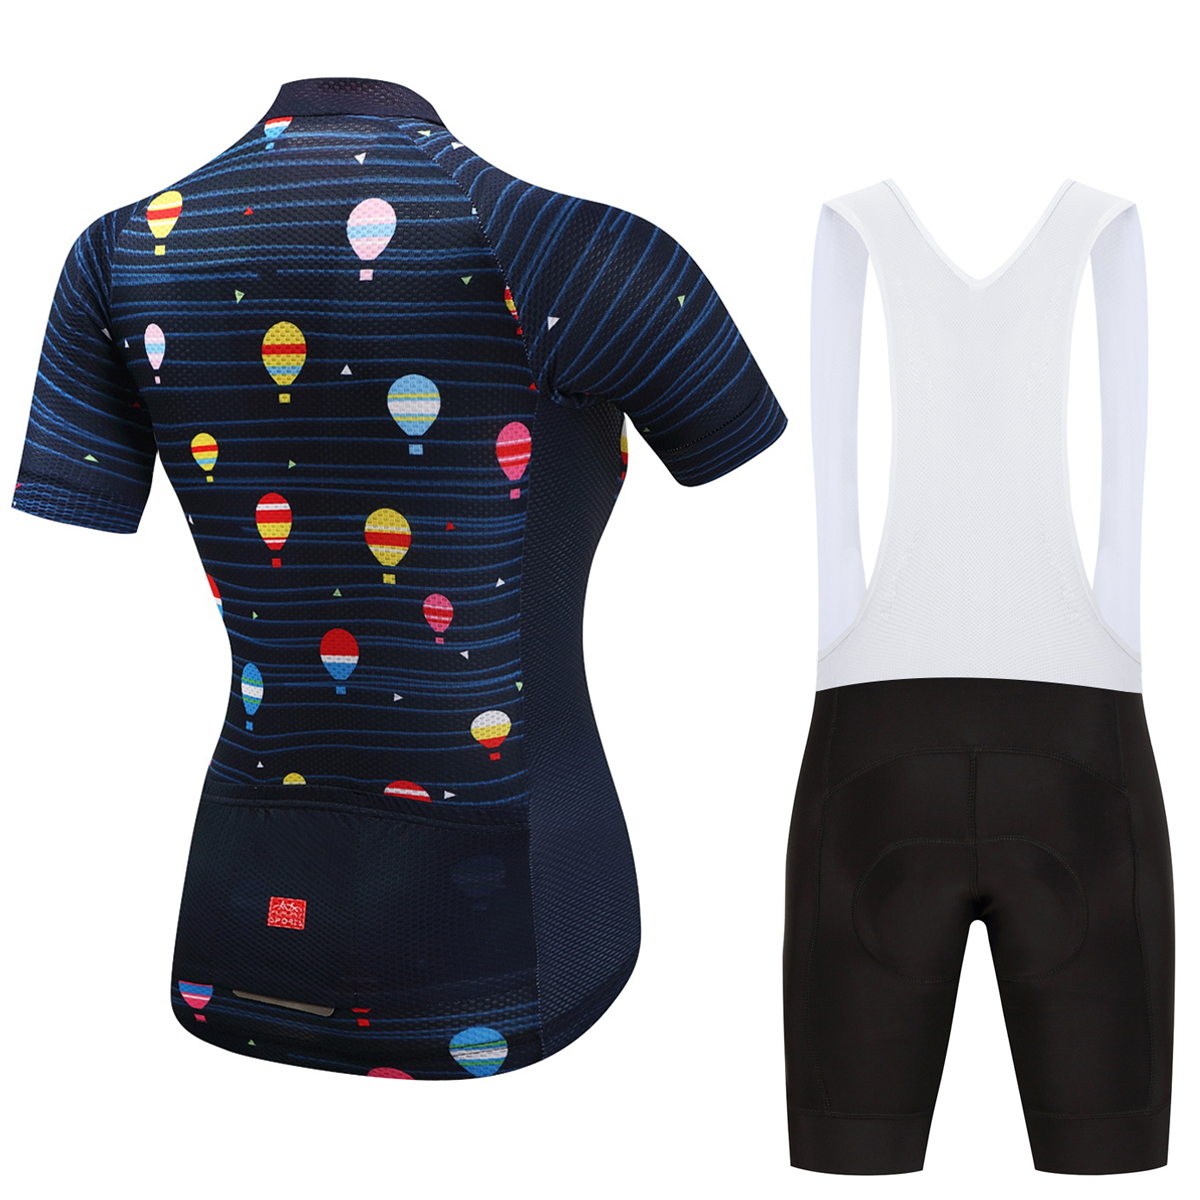 FUALRNY Women Pro Cycling Set 100% Polyester Breathable Bicycle Clothes Summer UV Cycling Jersey Set Bike Cycling Clothing